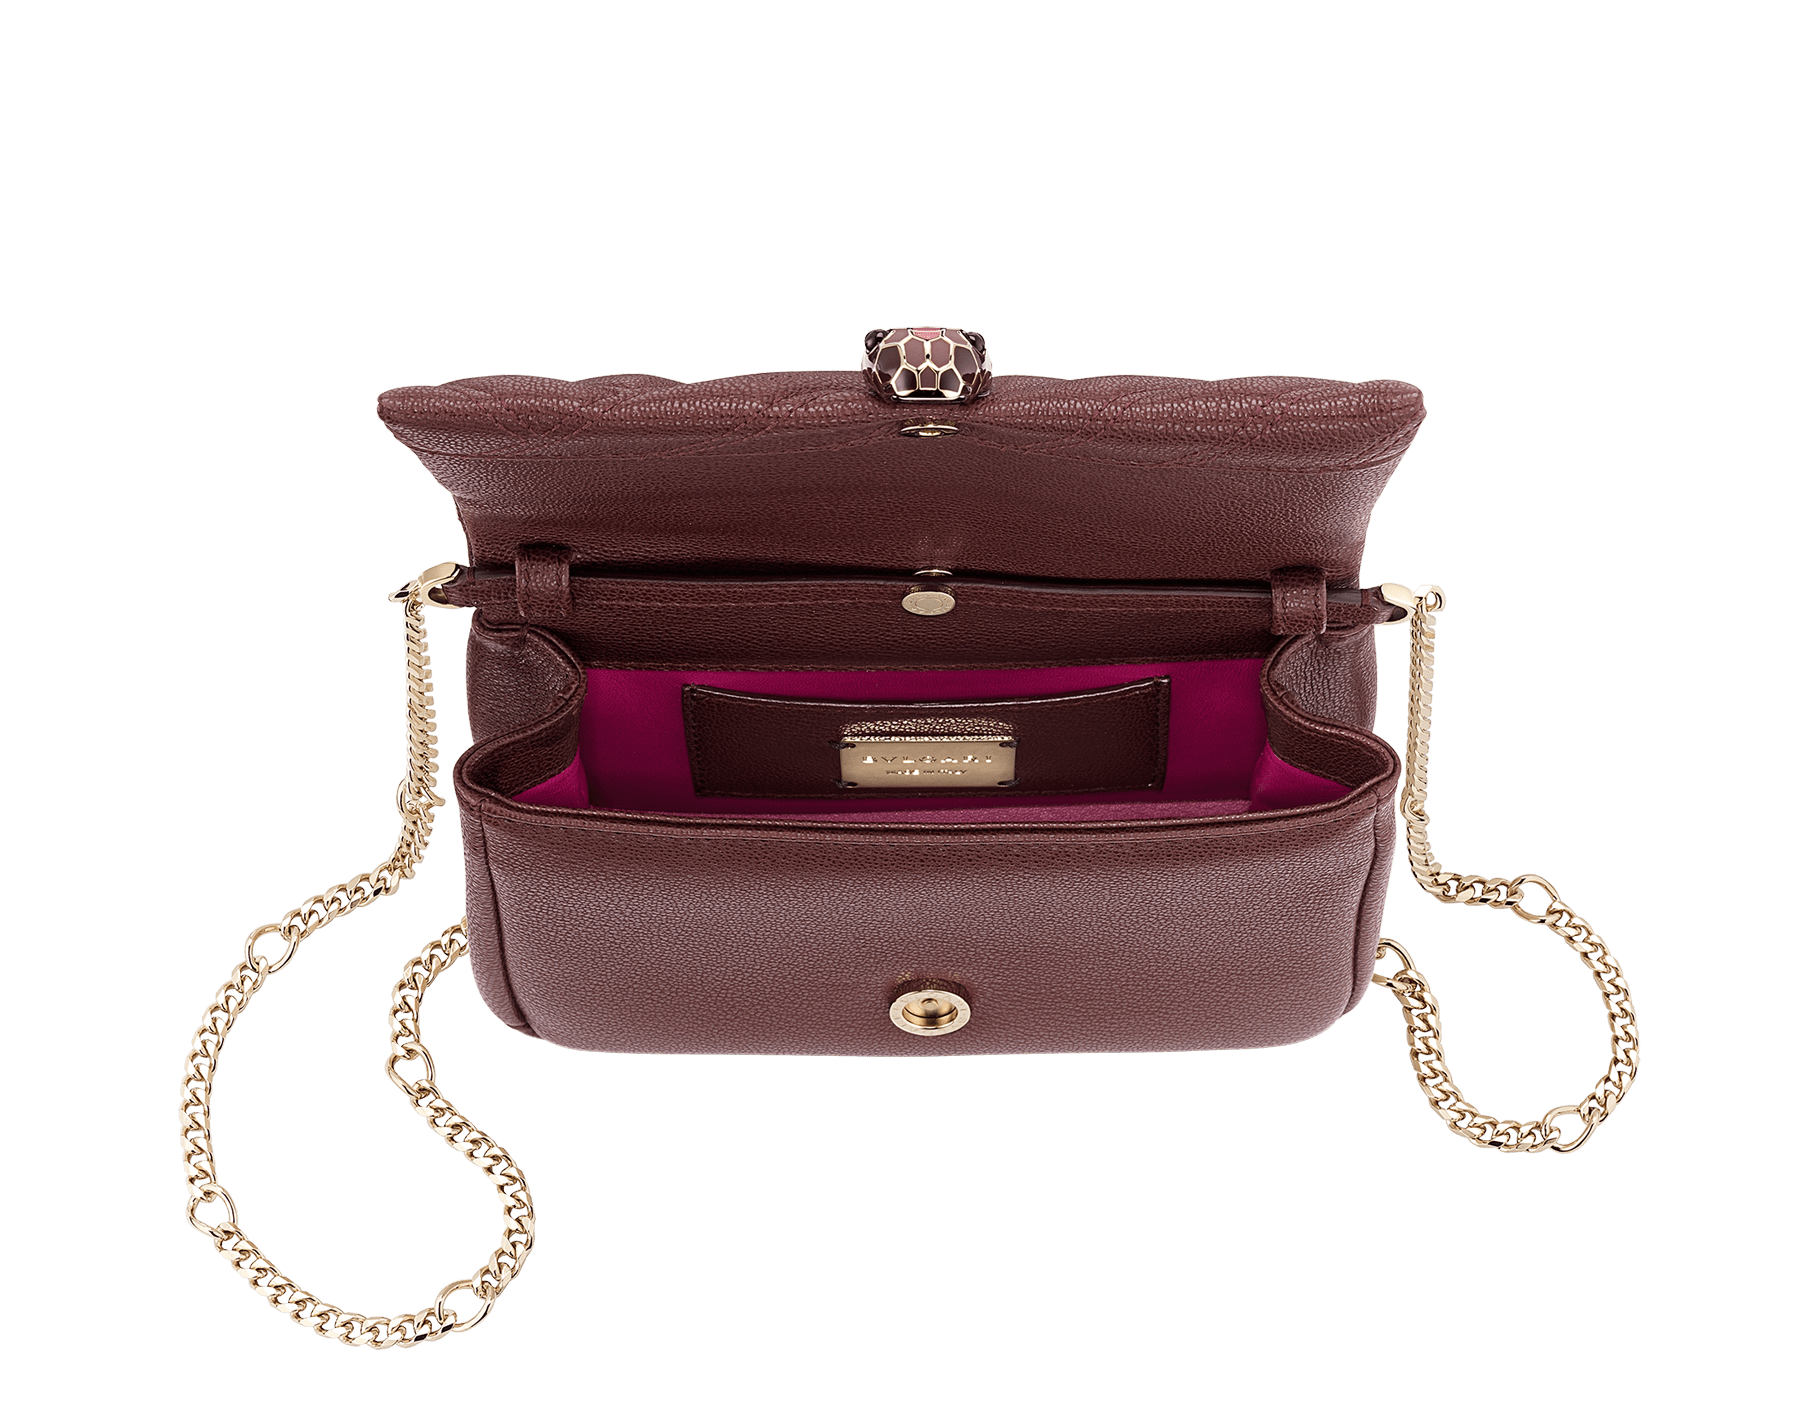 """Serpenti Cabochon"" crossbody mini bag in soft quilted Oxblood bordeaux grainy calf leather, with a graphic motif, and Berry Tourmaline fuchsia nappa leather internal lining. Tempting snakehead closure in light gold plated brass enriched with dégradé Oxblood bordeaux enamel from ultrabright to bright, with black onyx eyes. 290648 image 2"